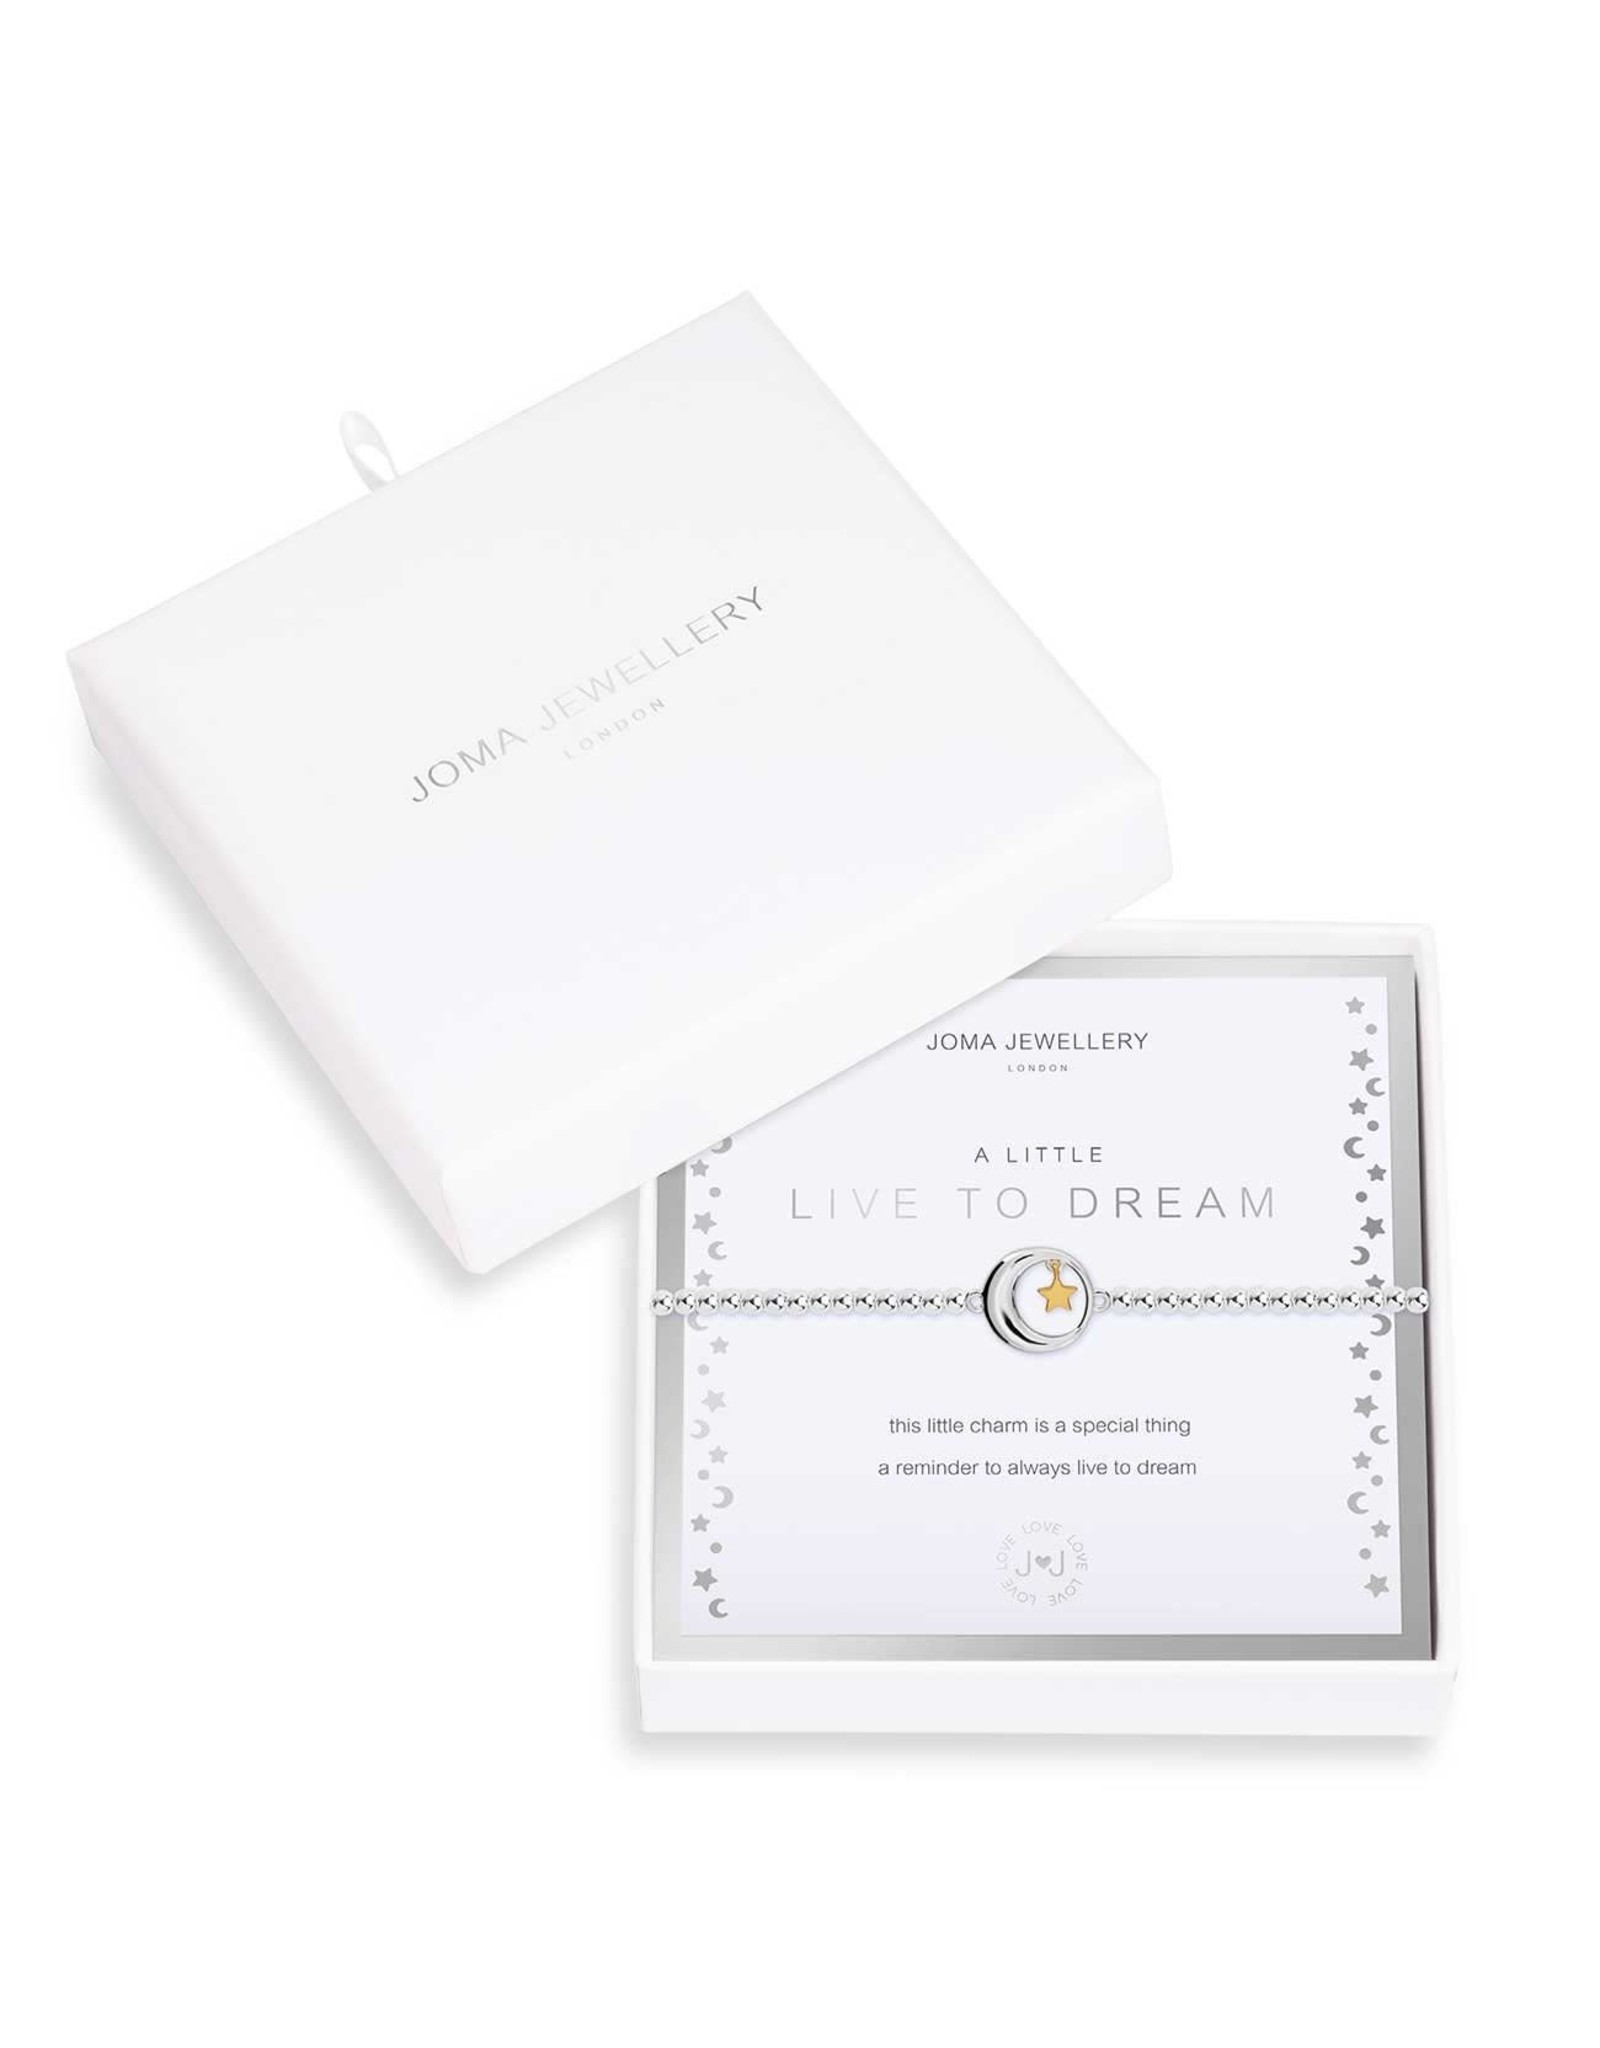 Joma Jewellery Boxed A Little - Live to Dream - Armband